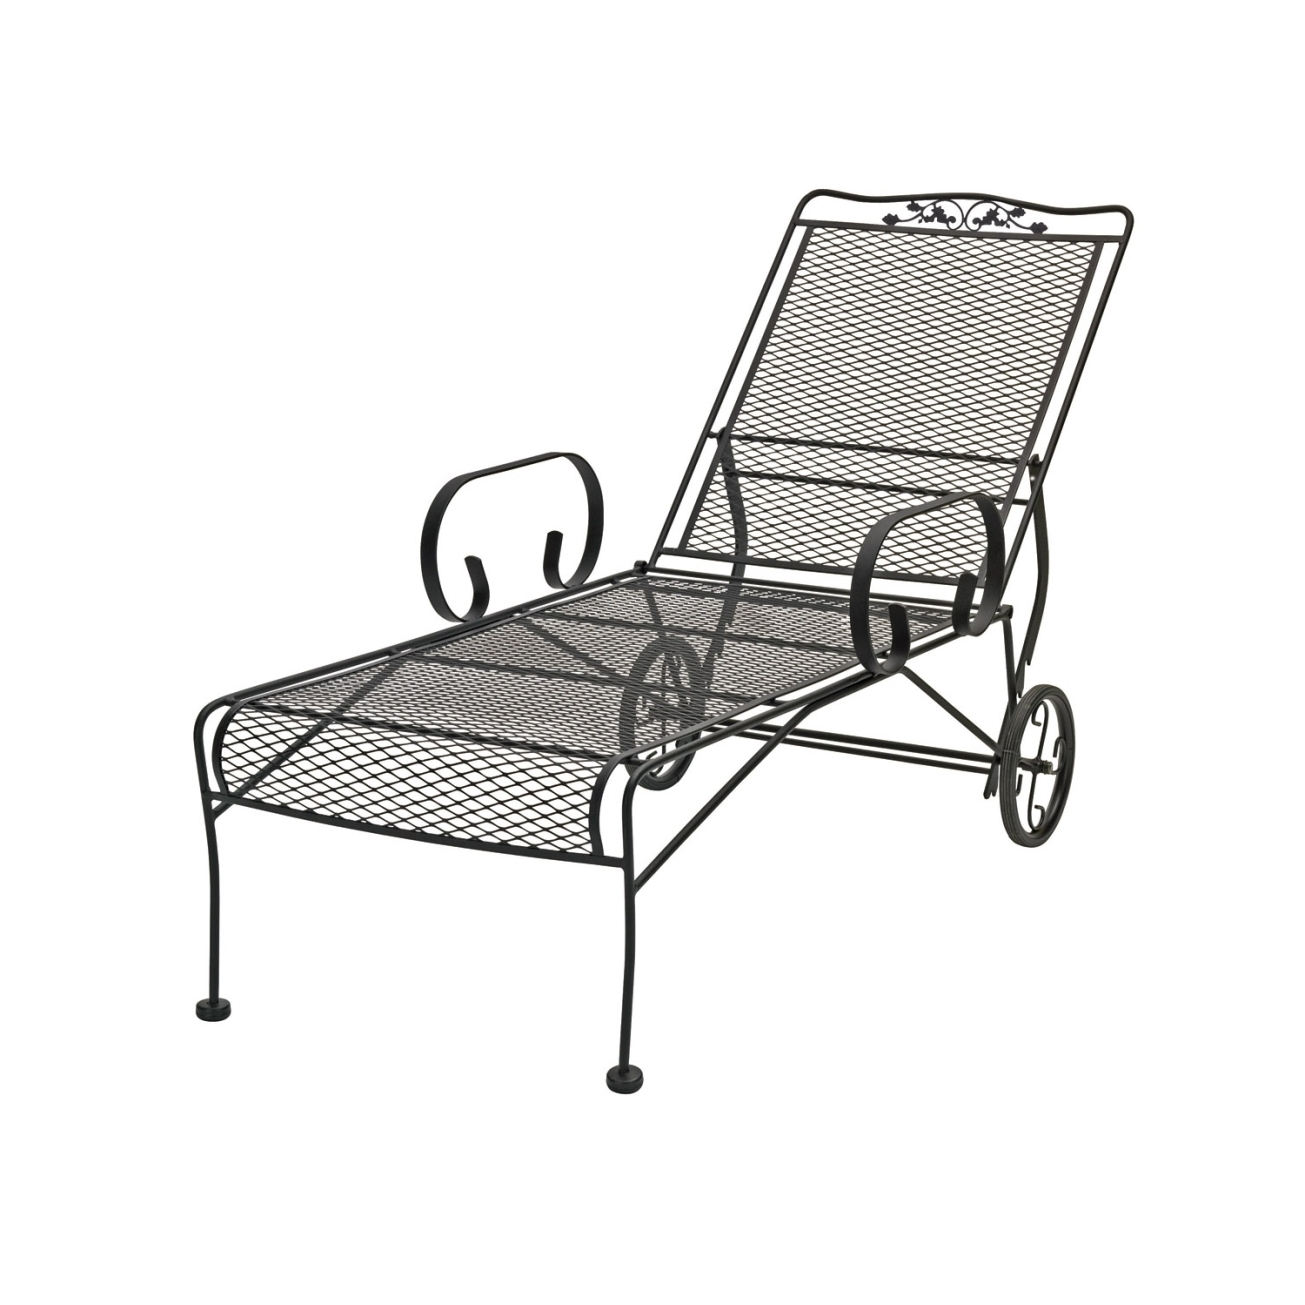 Lounge Chair : Discount Outdoor Furniture Rolston Patio Furniture With 2018 Chaise Lounge Chairs For Outdoors (View 5 of 15)